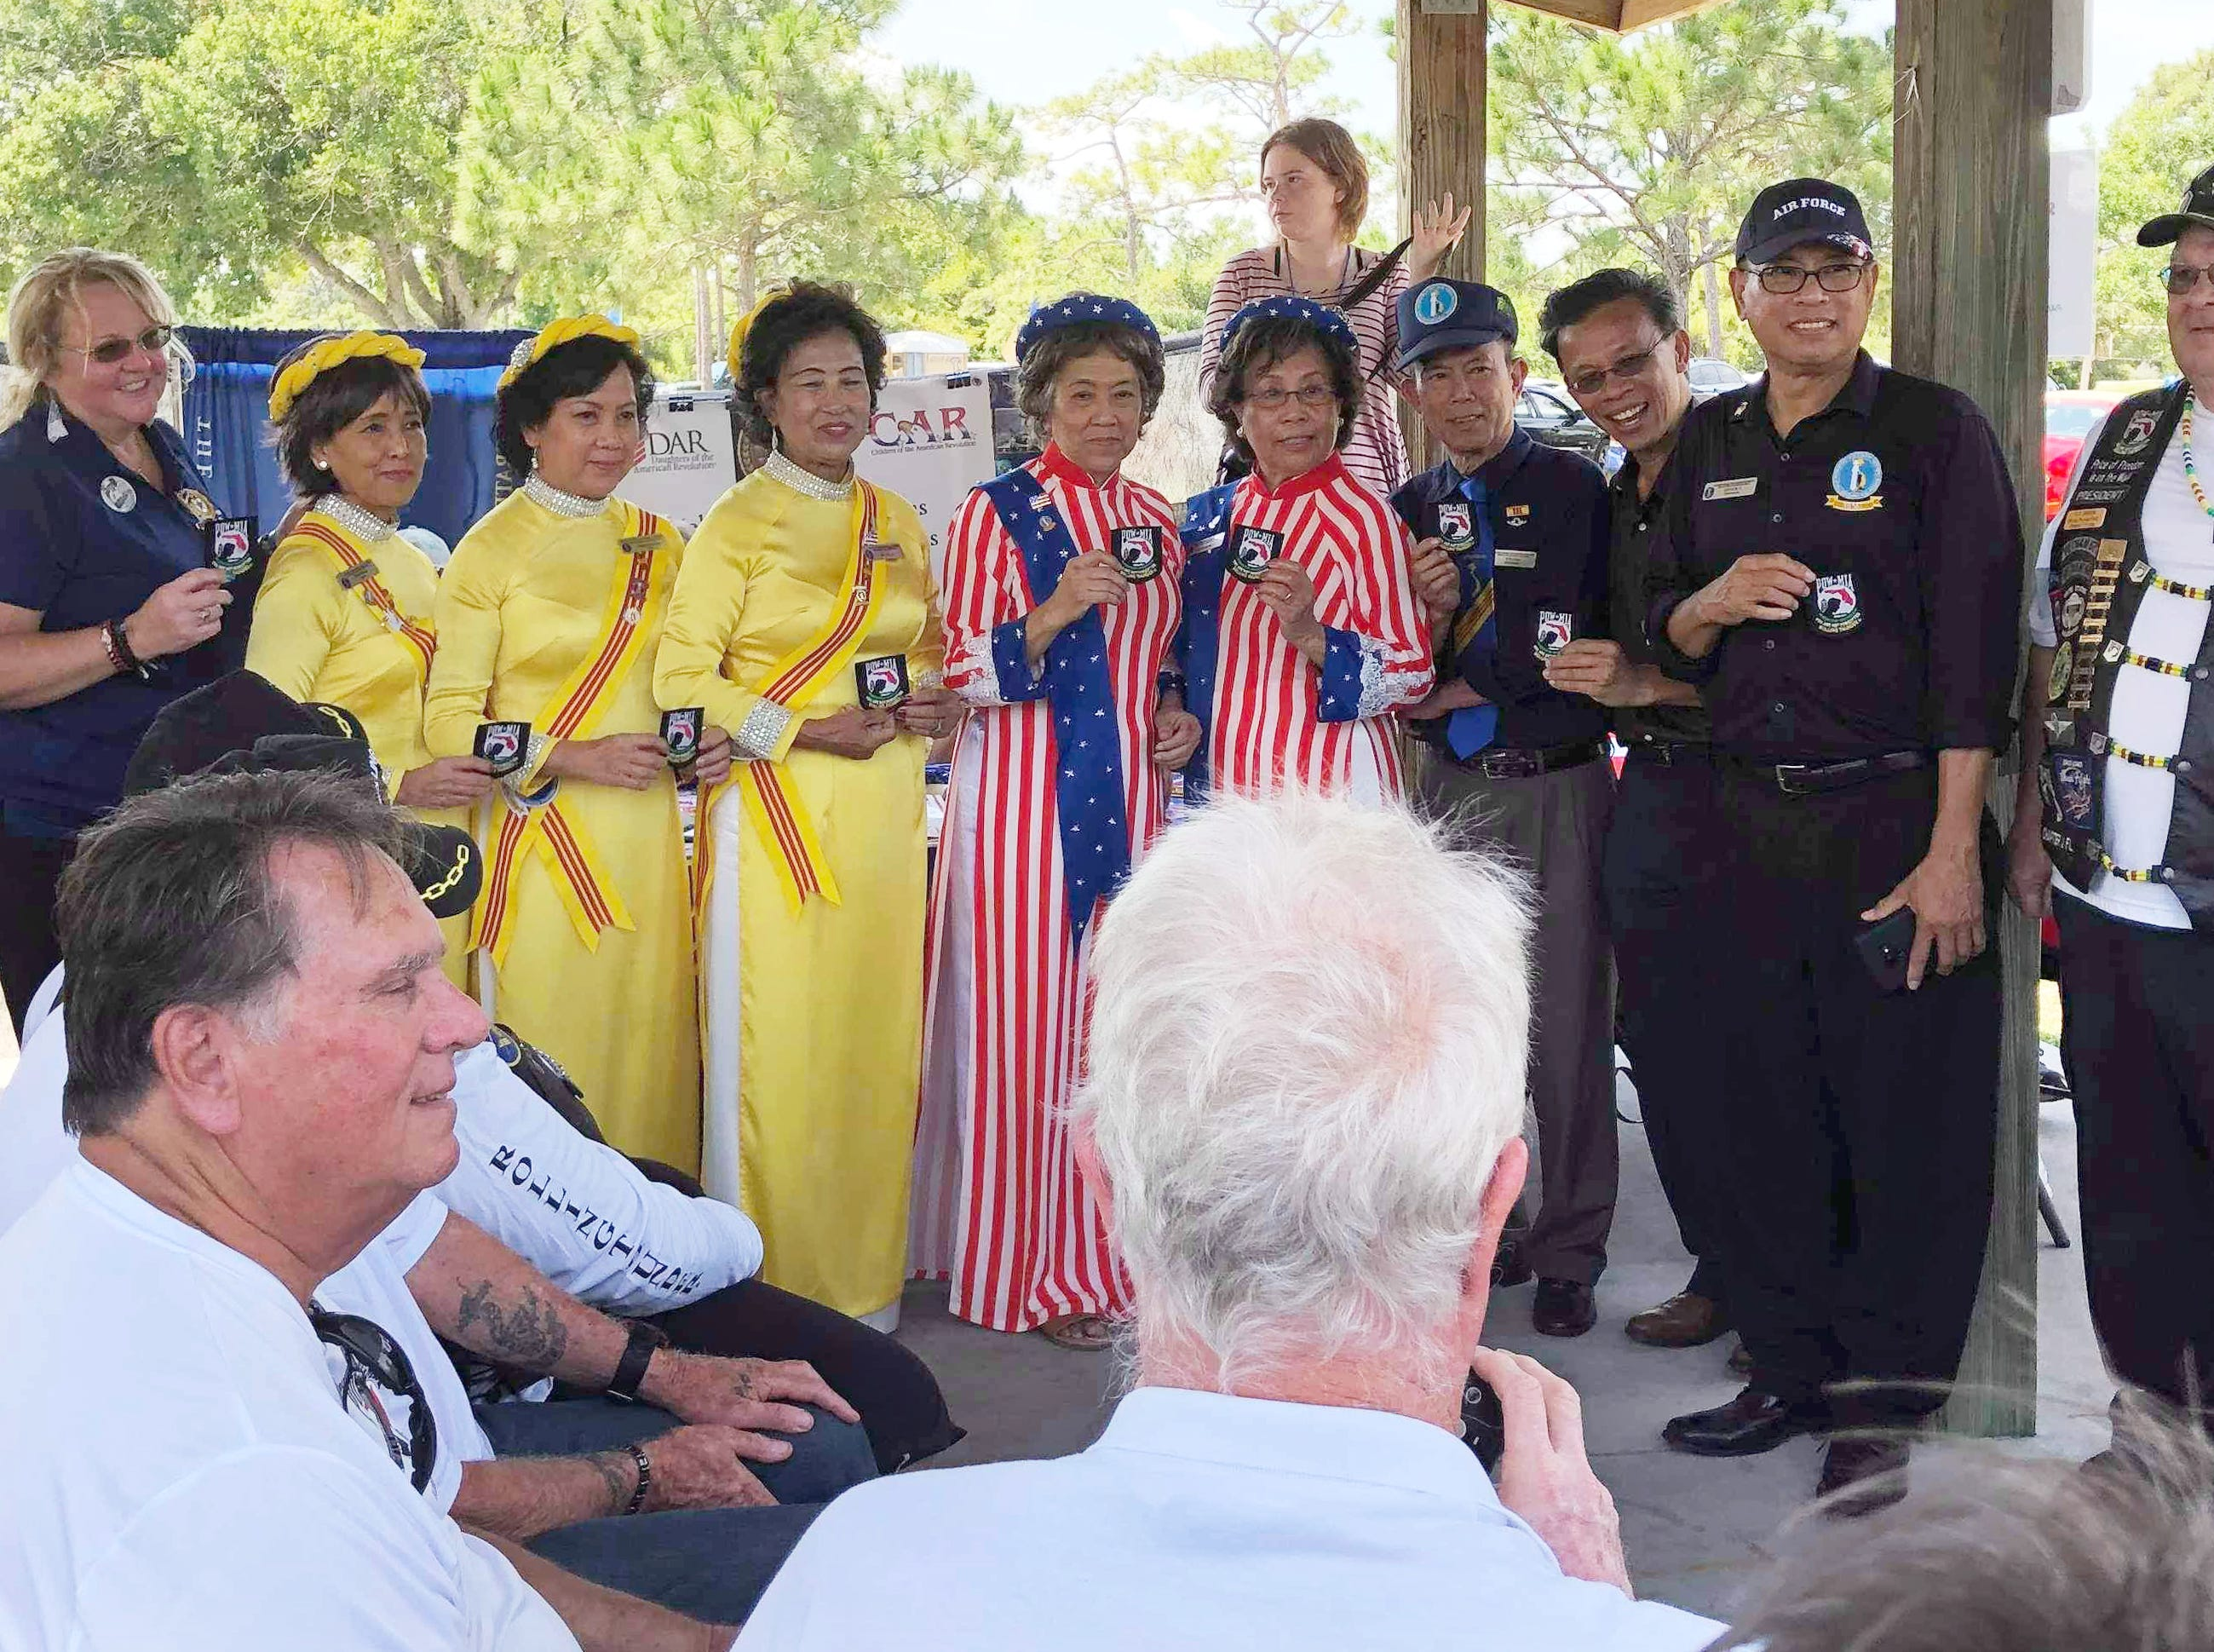 Welcome Home Vietnam & Vietnam Era Veterans, a 1:00pm Saturday event held at the Vietnam Traveling Memorial Wall at Wickham Park in Melbourne. This is part of the Vietnam and All Veterans Reunion that continues until Sunday, May 12.